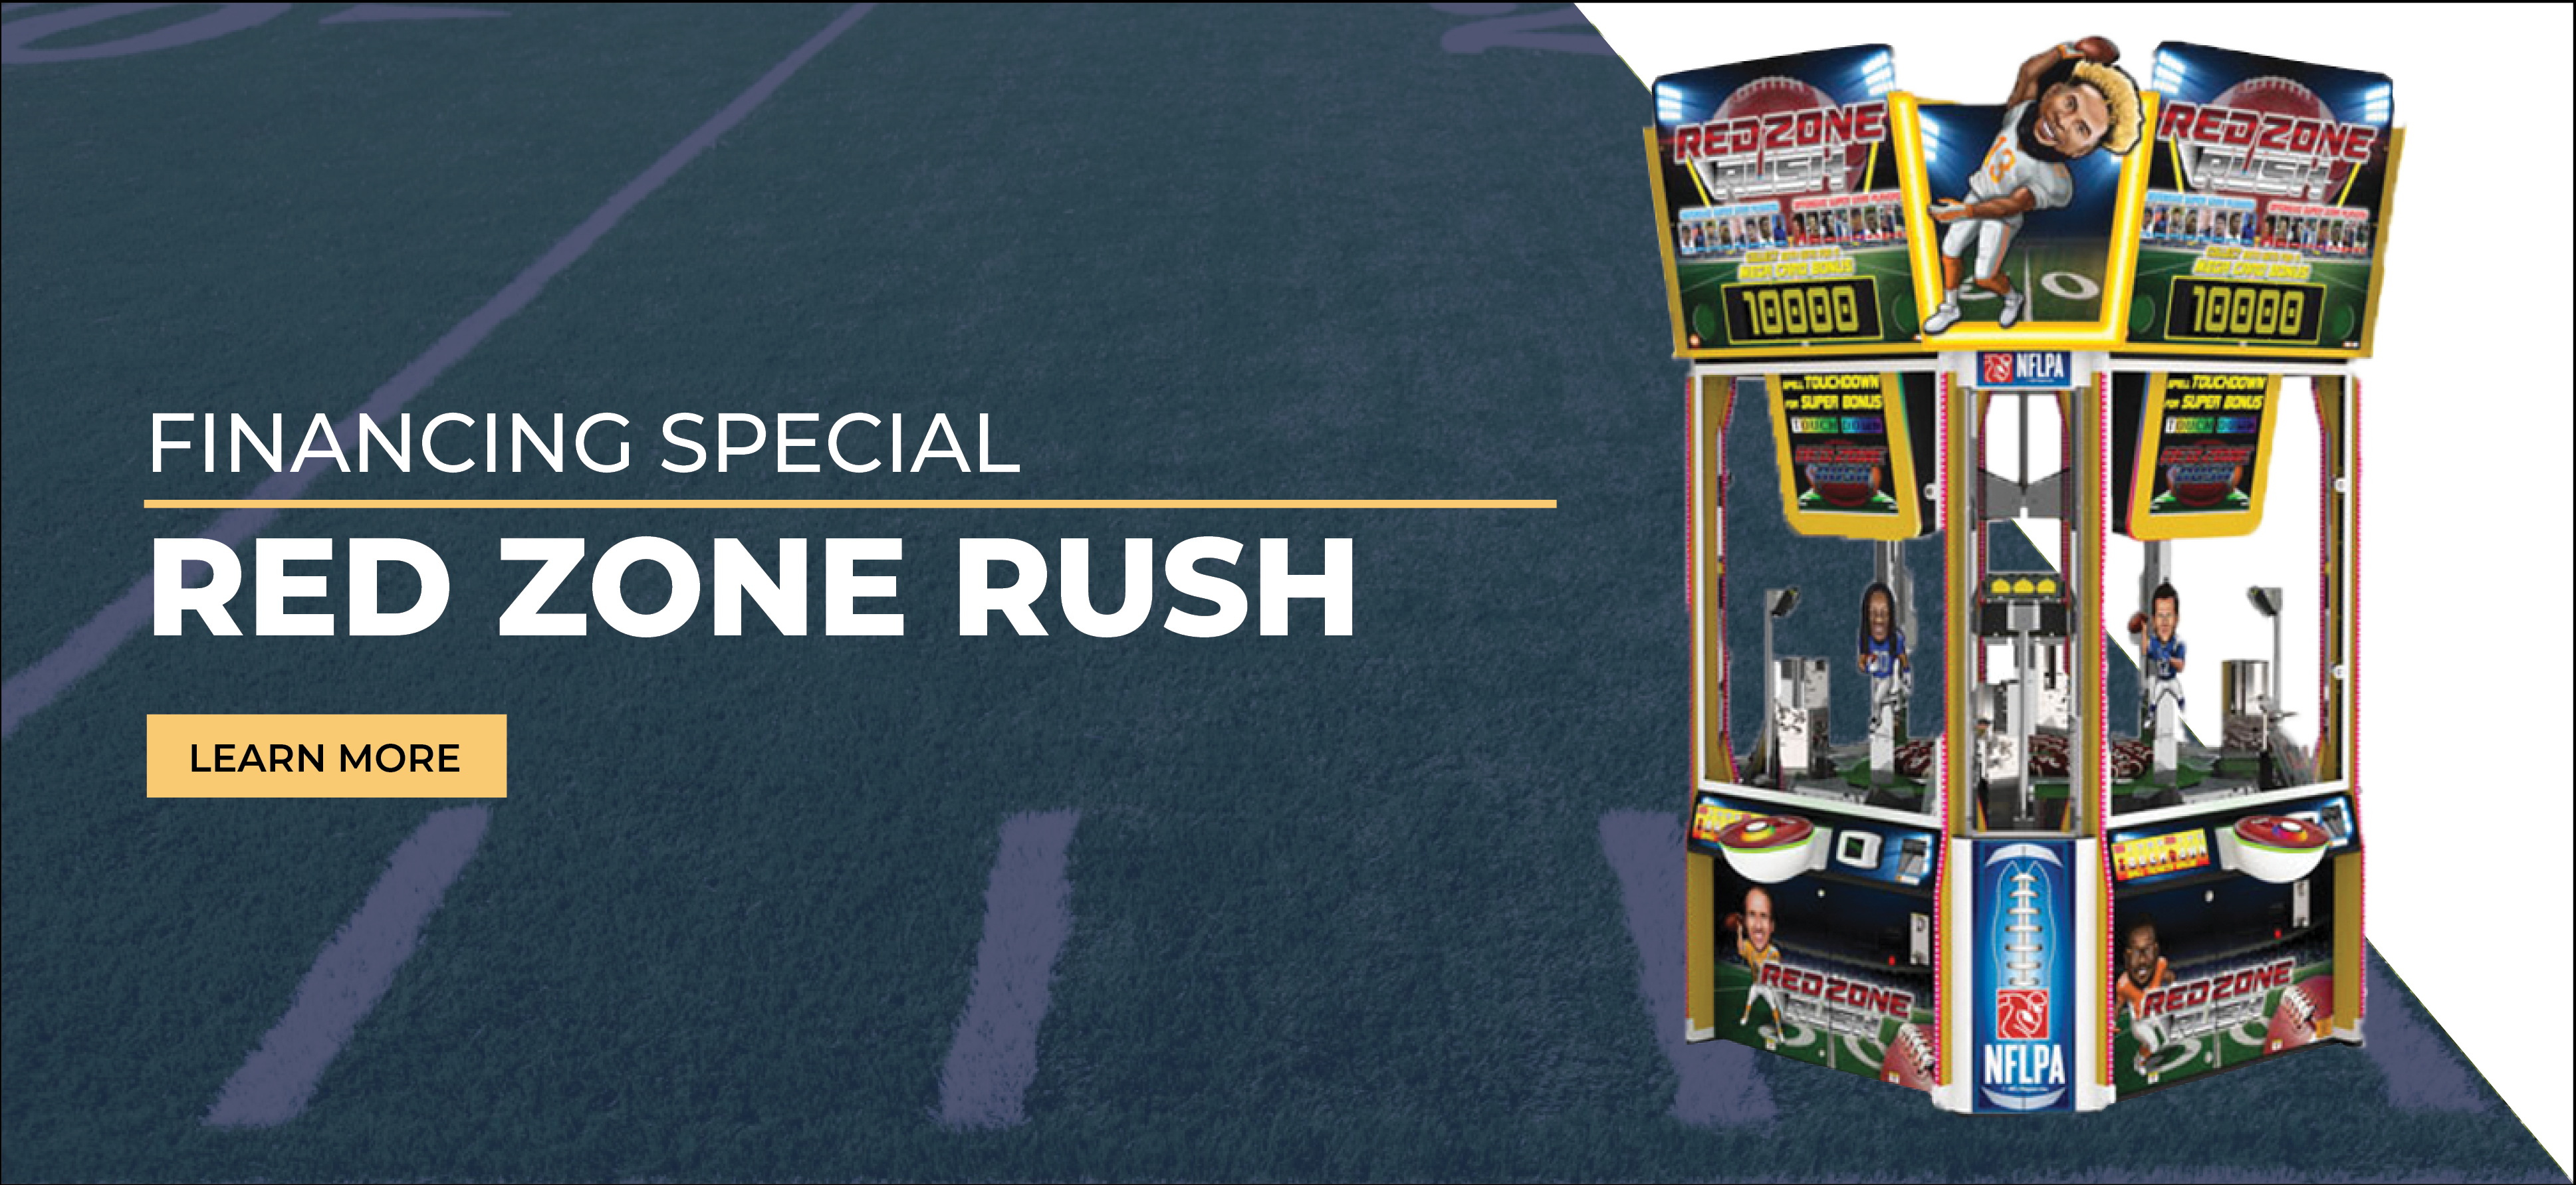 Red Zone Rush Finance Special